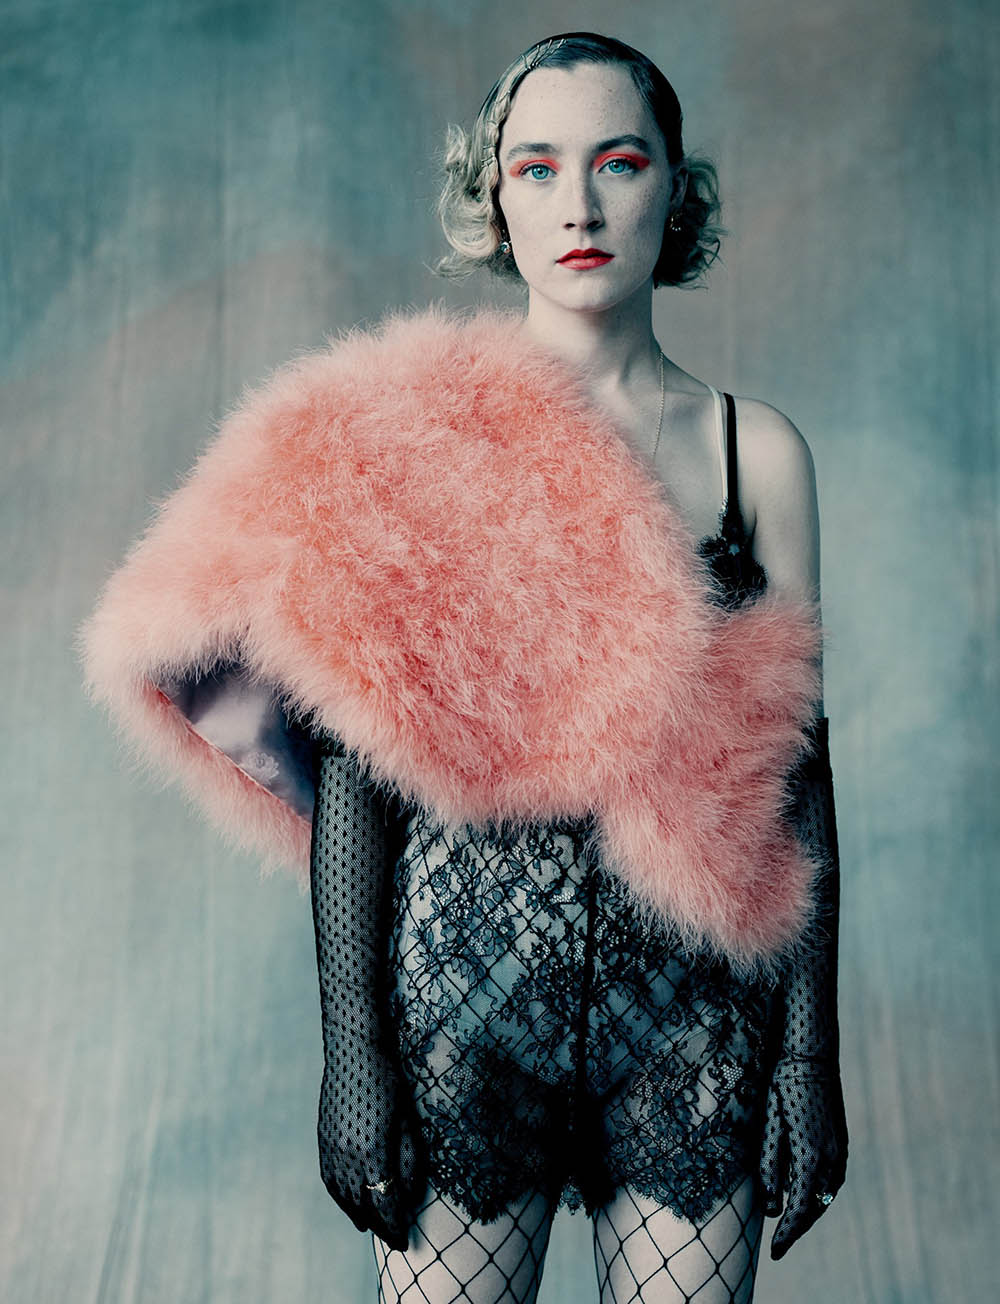 Saoirse Ronan covers Dazed Magazine Winter 2019 by Paolo Roversi